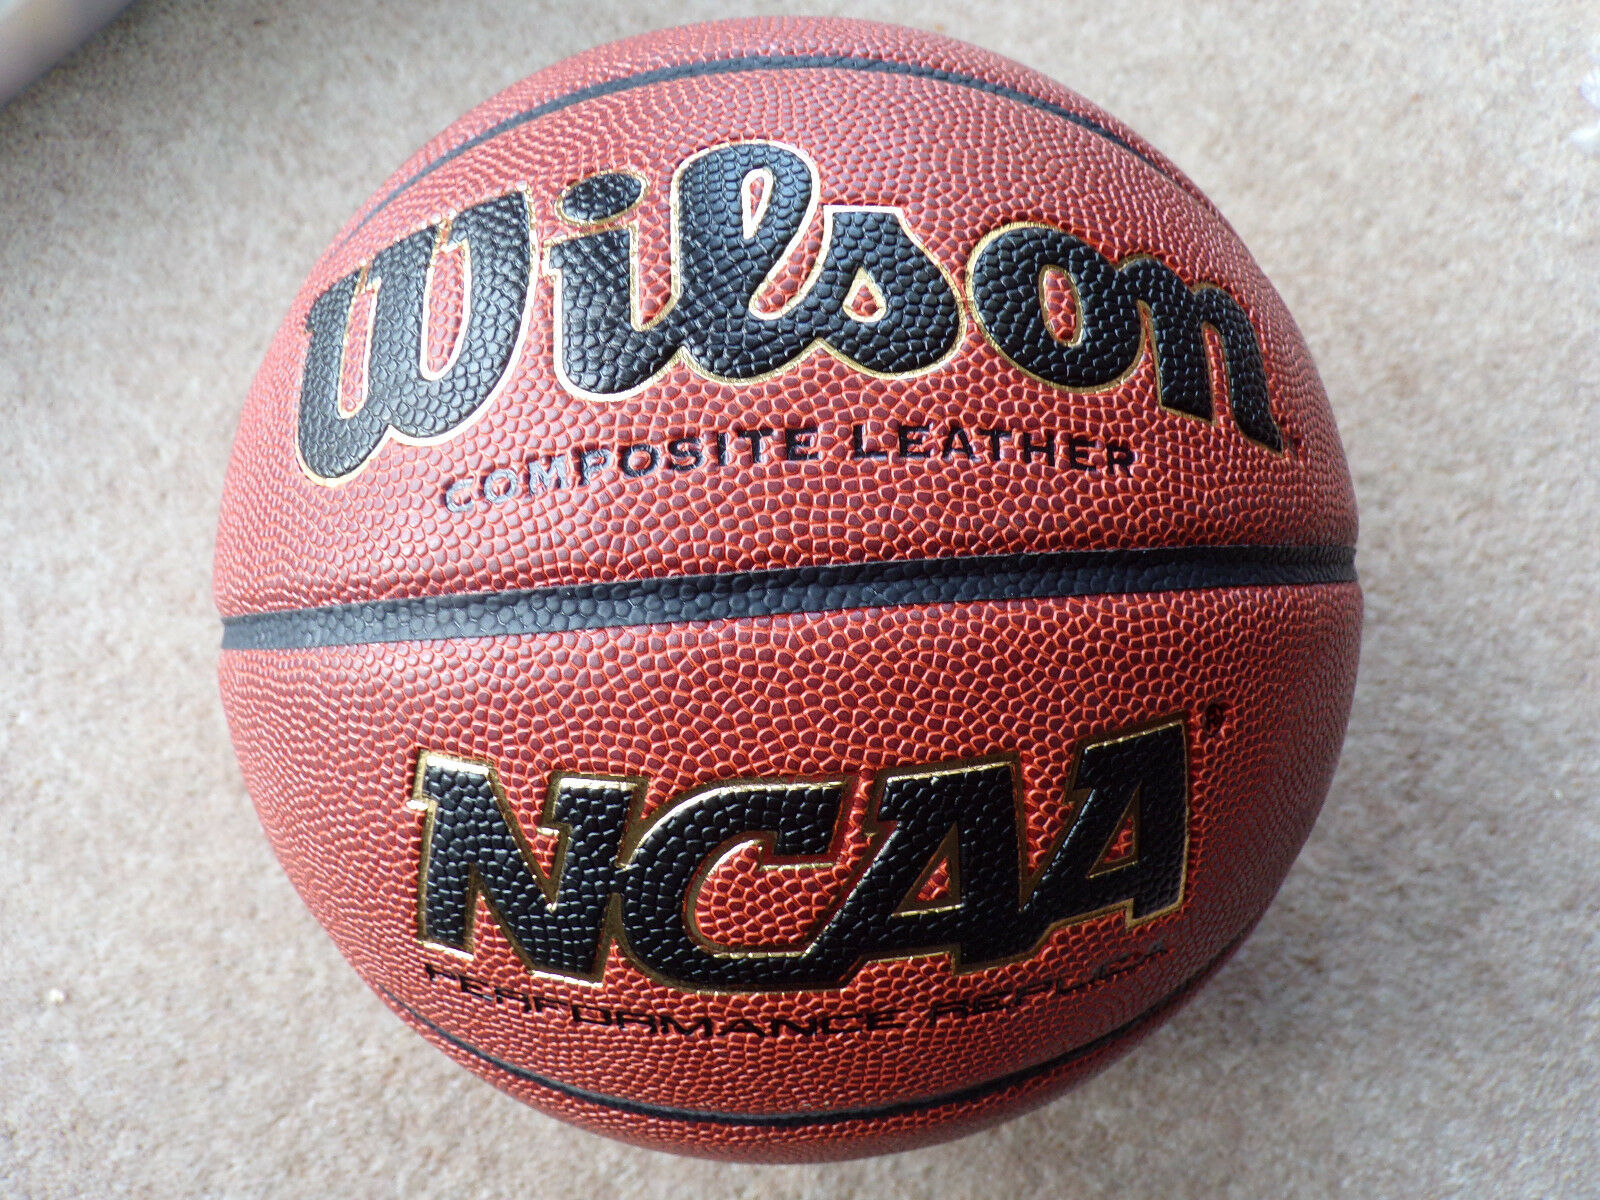 Wilson NCAA Basketball Composite Leather Official 29.5  Size 7 Inflated